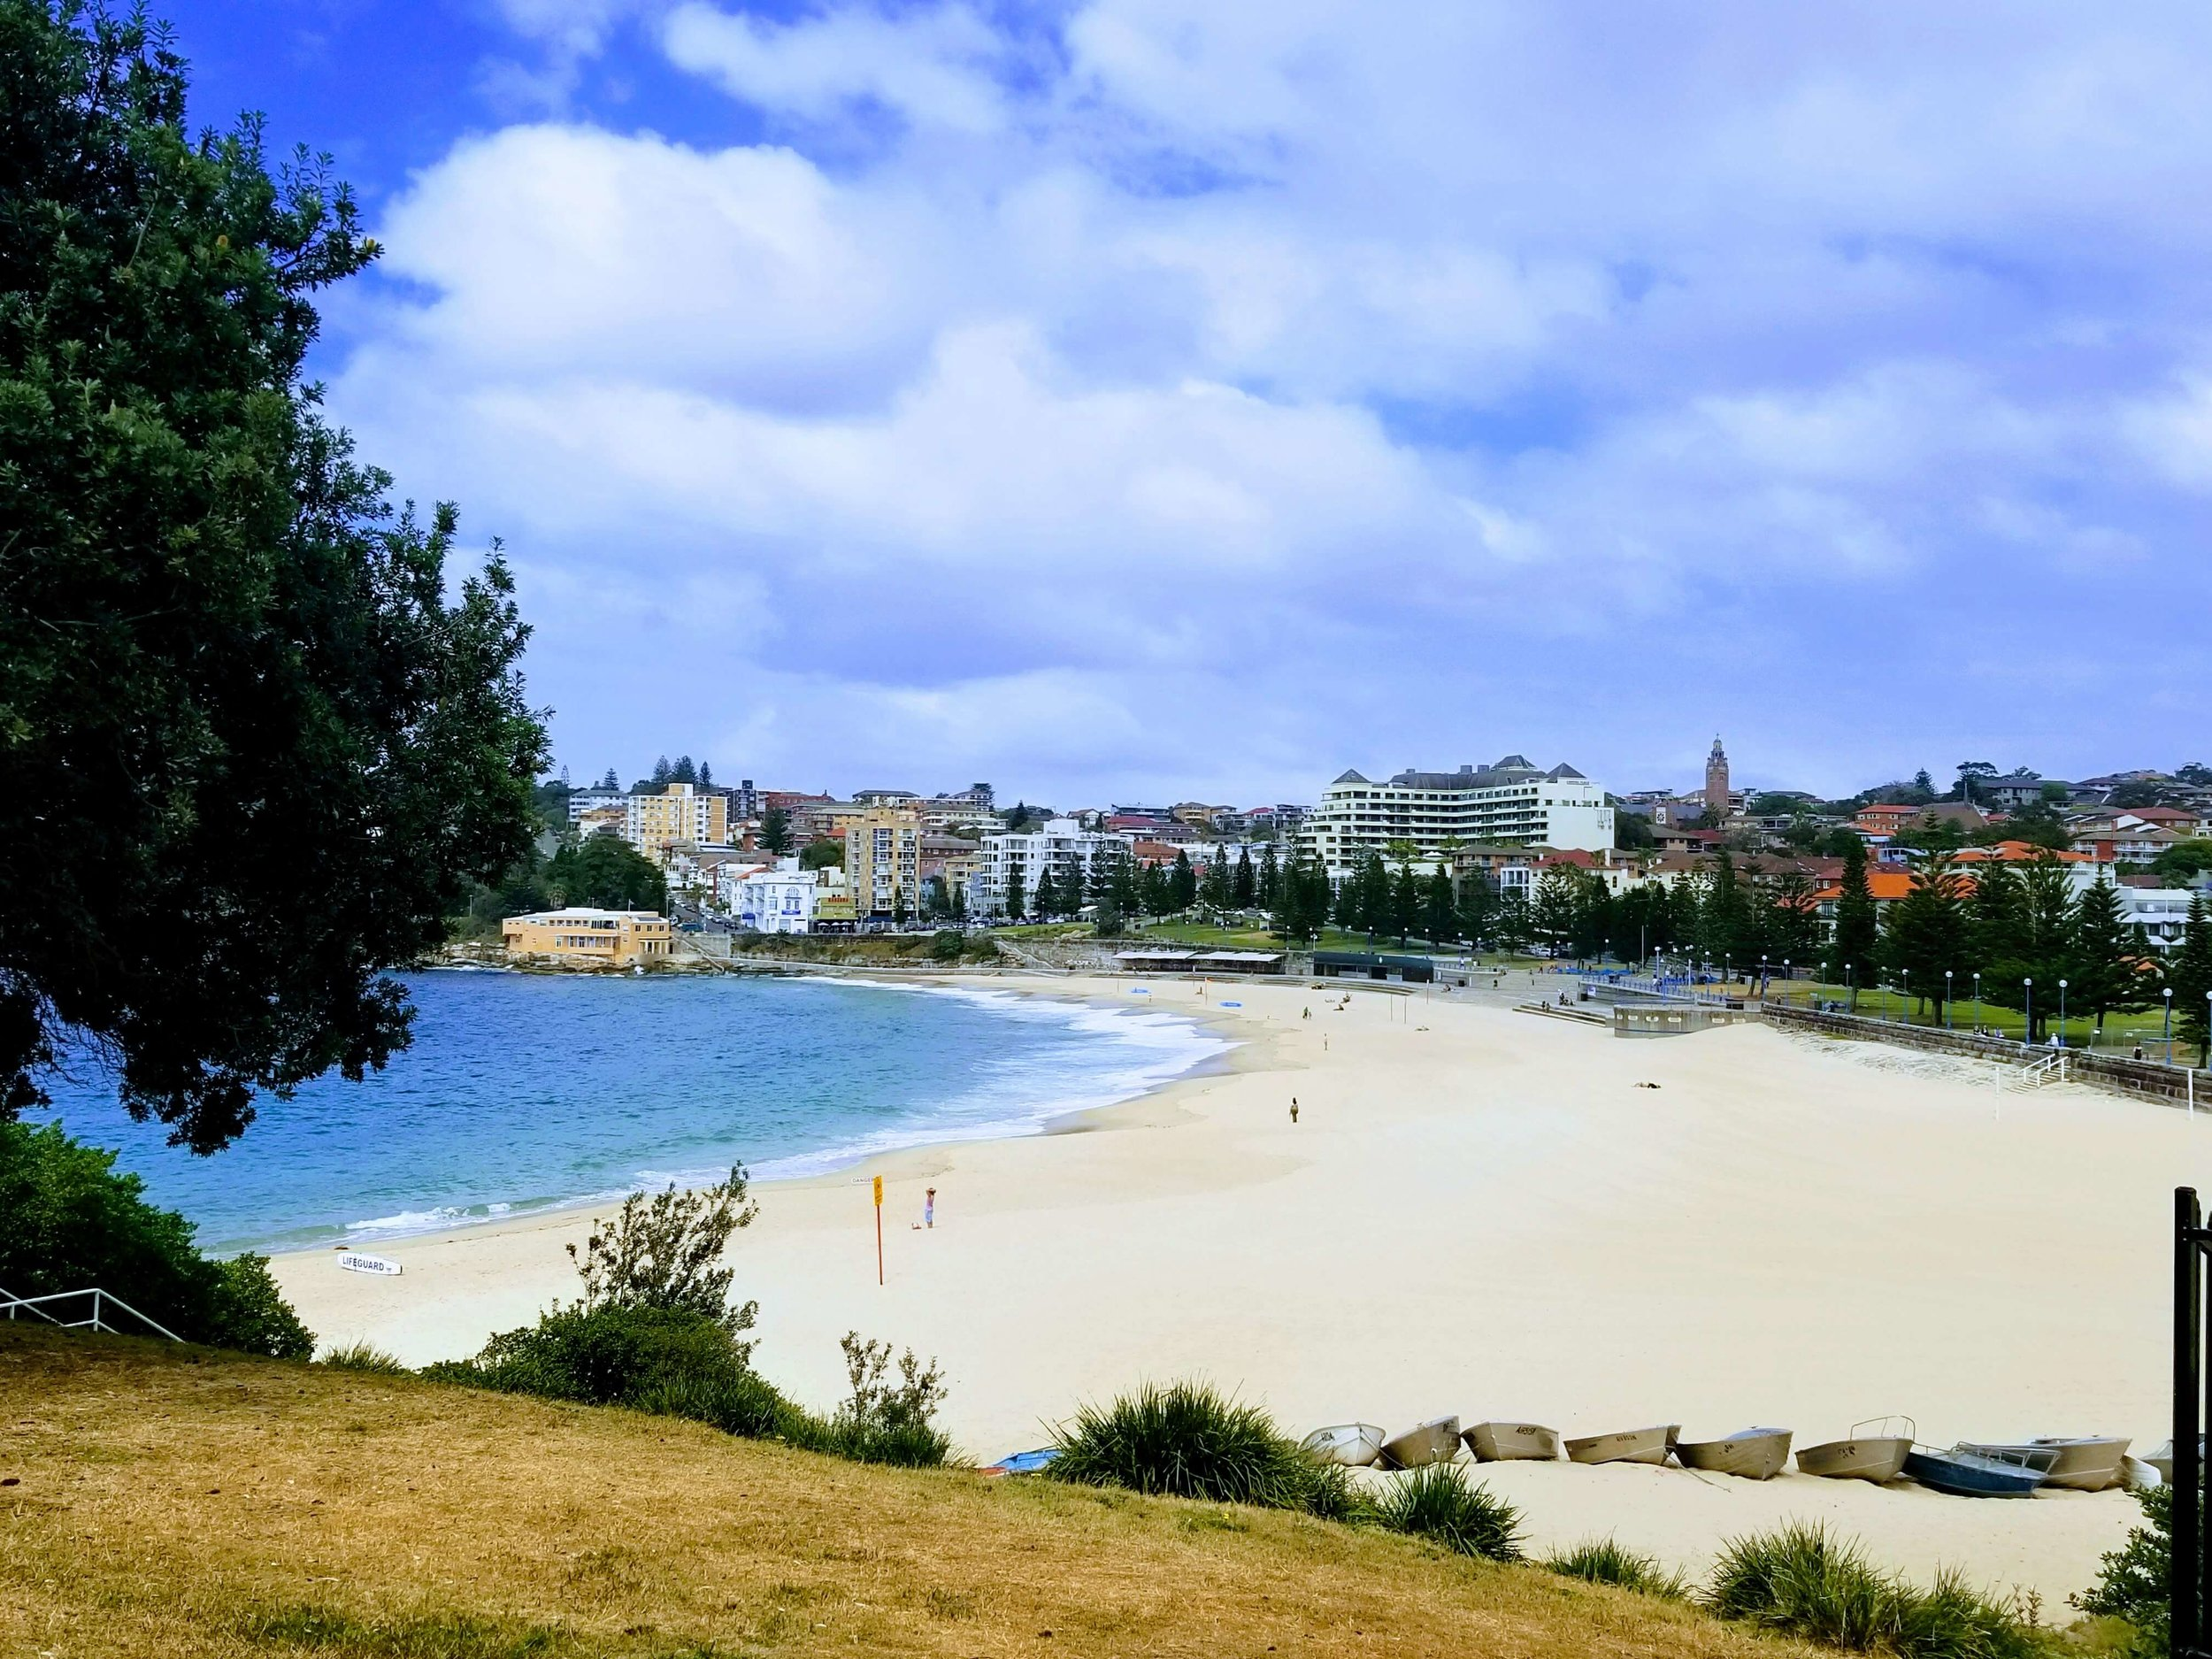 Coogee is a large, pretty, family-friendly beach. It tends to be a little less crowded than Bondi too.